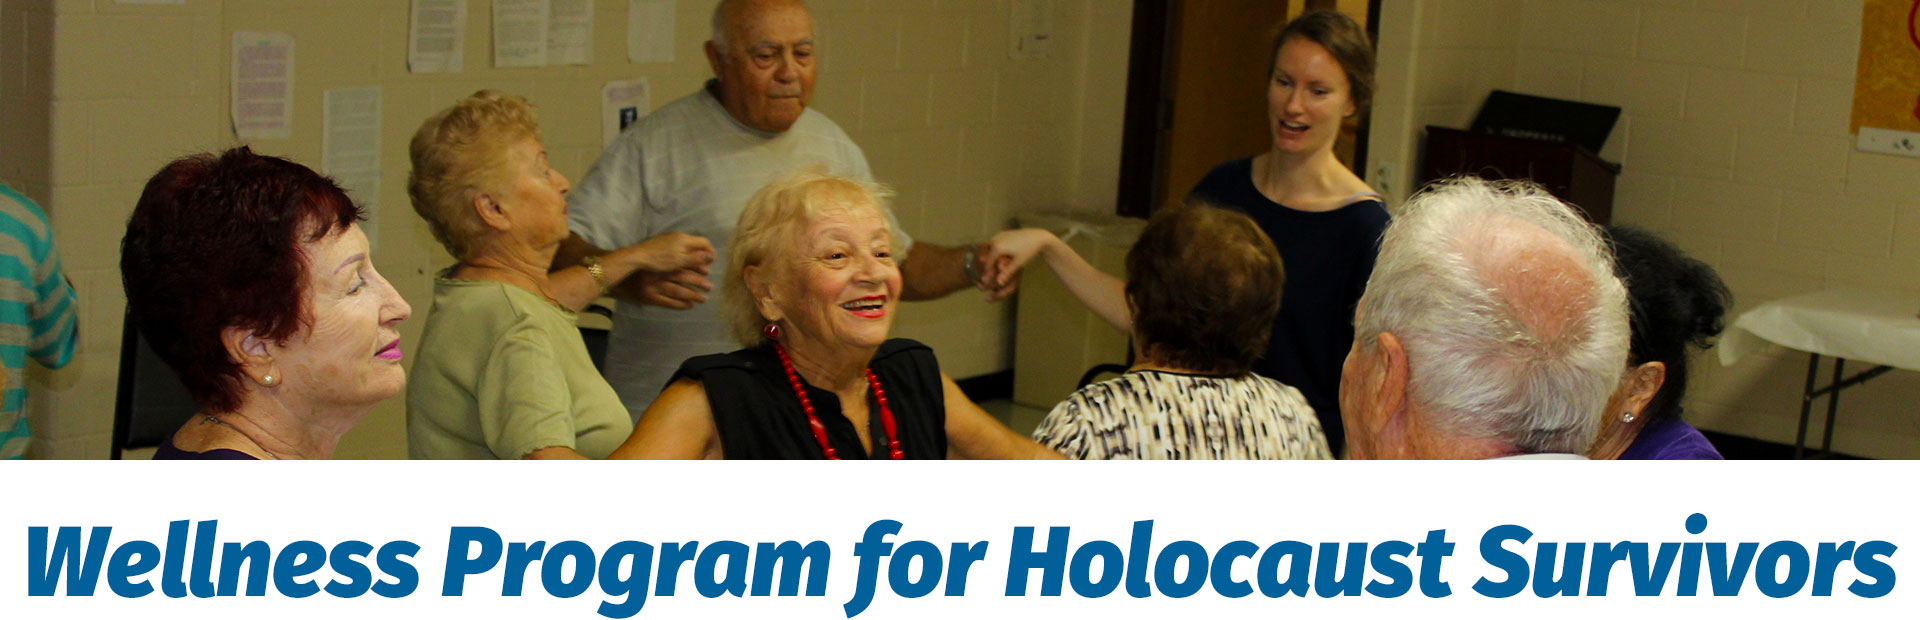 kleinlife wellness program, wellness program holocaust, wellness kleinlife